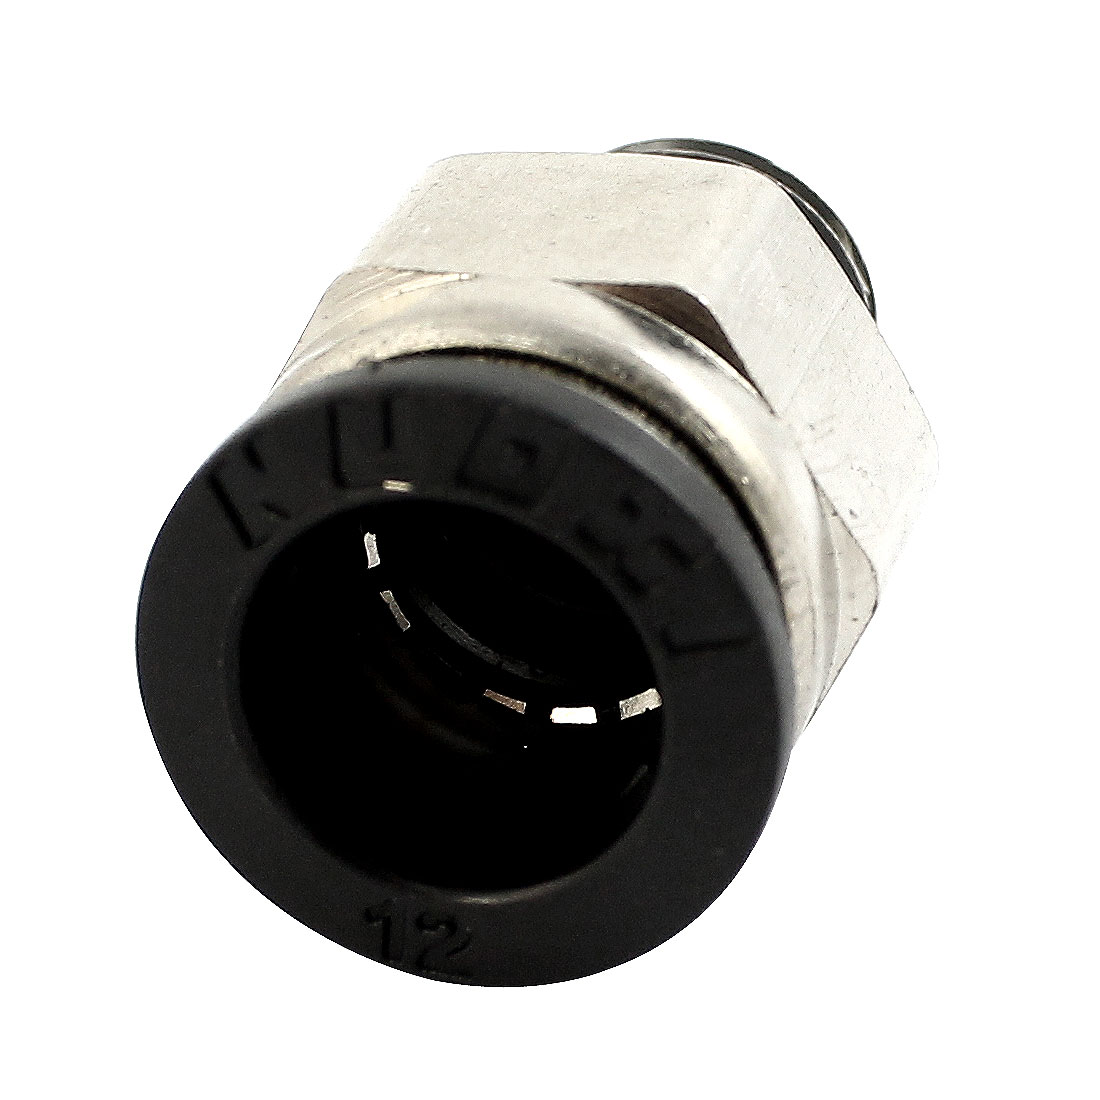 1/4PT Male Threaded to 12mm Dia Tube Silver Tone Metal Straight Air Pneumatic Quick Release Coupler Fitting Connector Joint